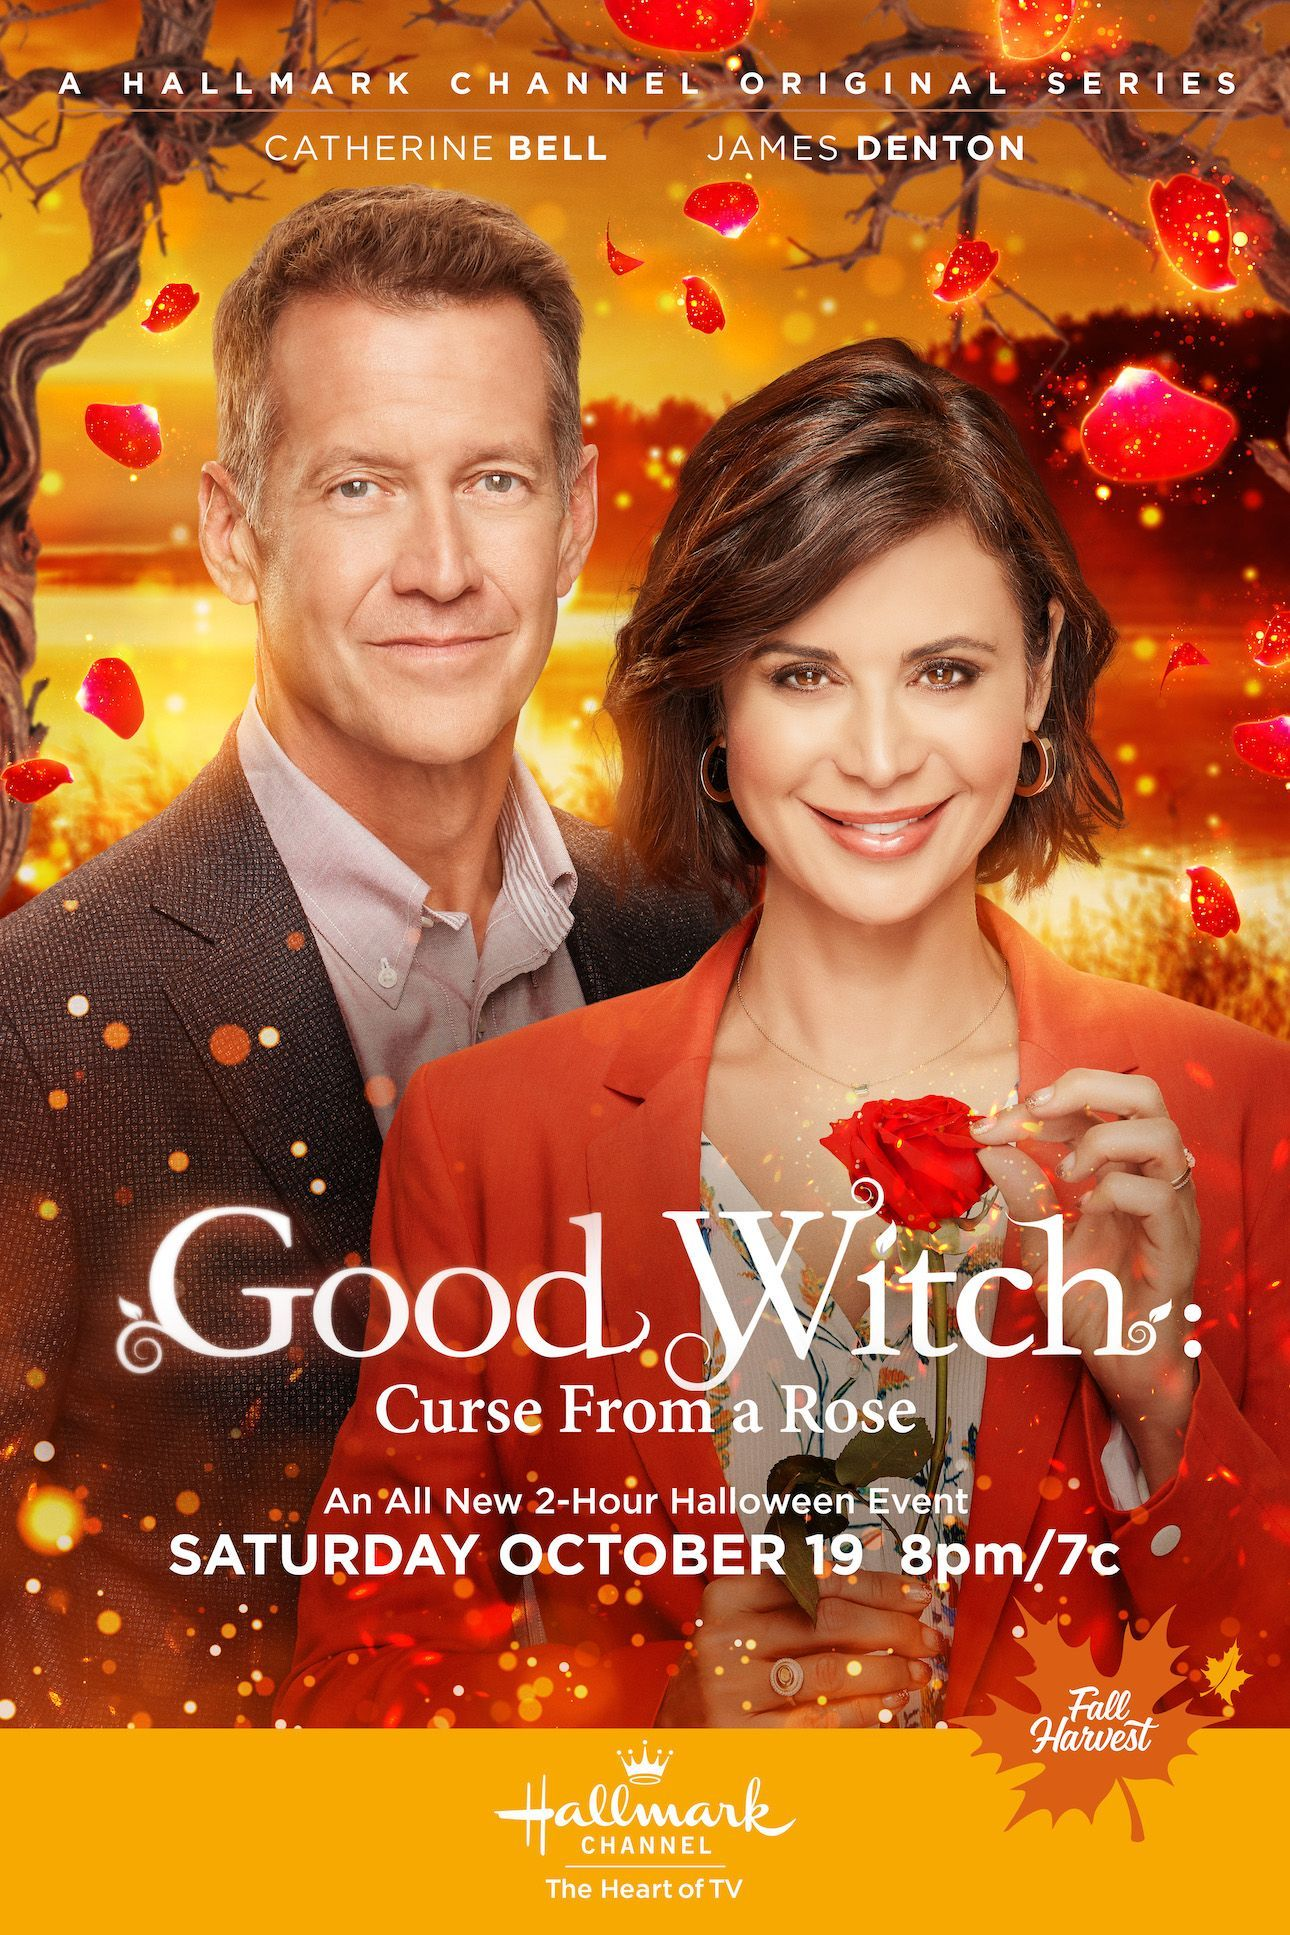 Cassie Catherine Bell Sam James Denton And The Town Of Middleton Are Back In Good Witch Curs Hallmark Good Witch The Good Witch Series Hallmark Channel